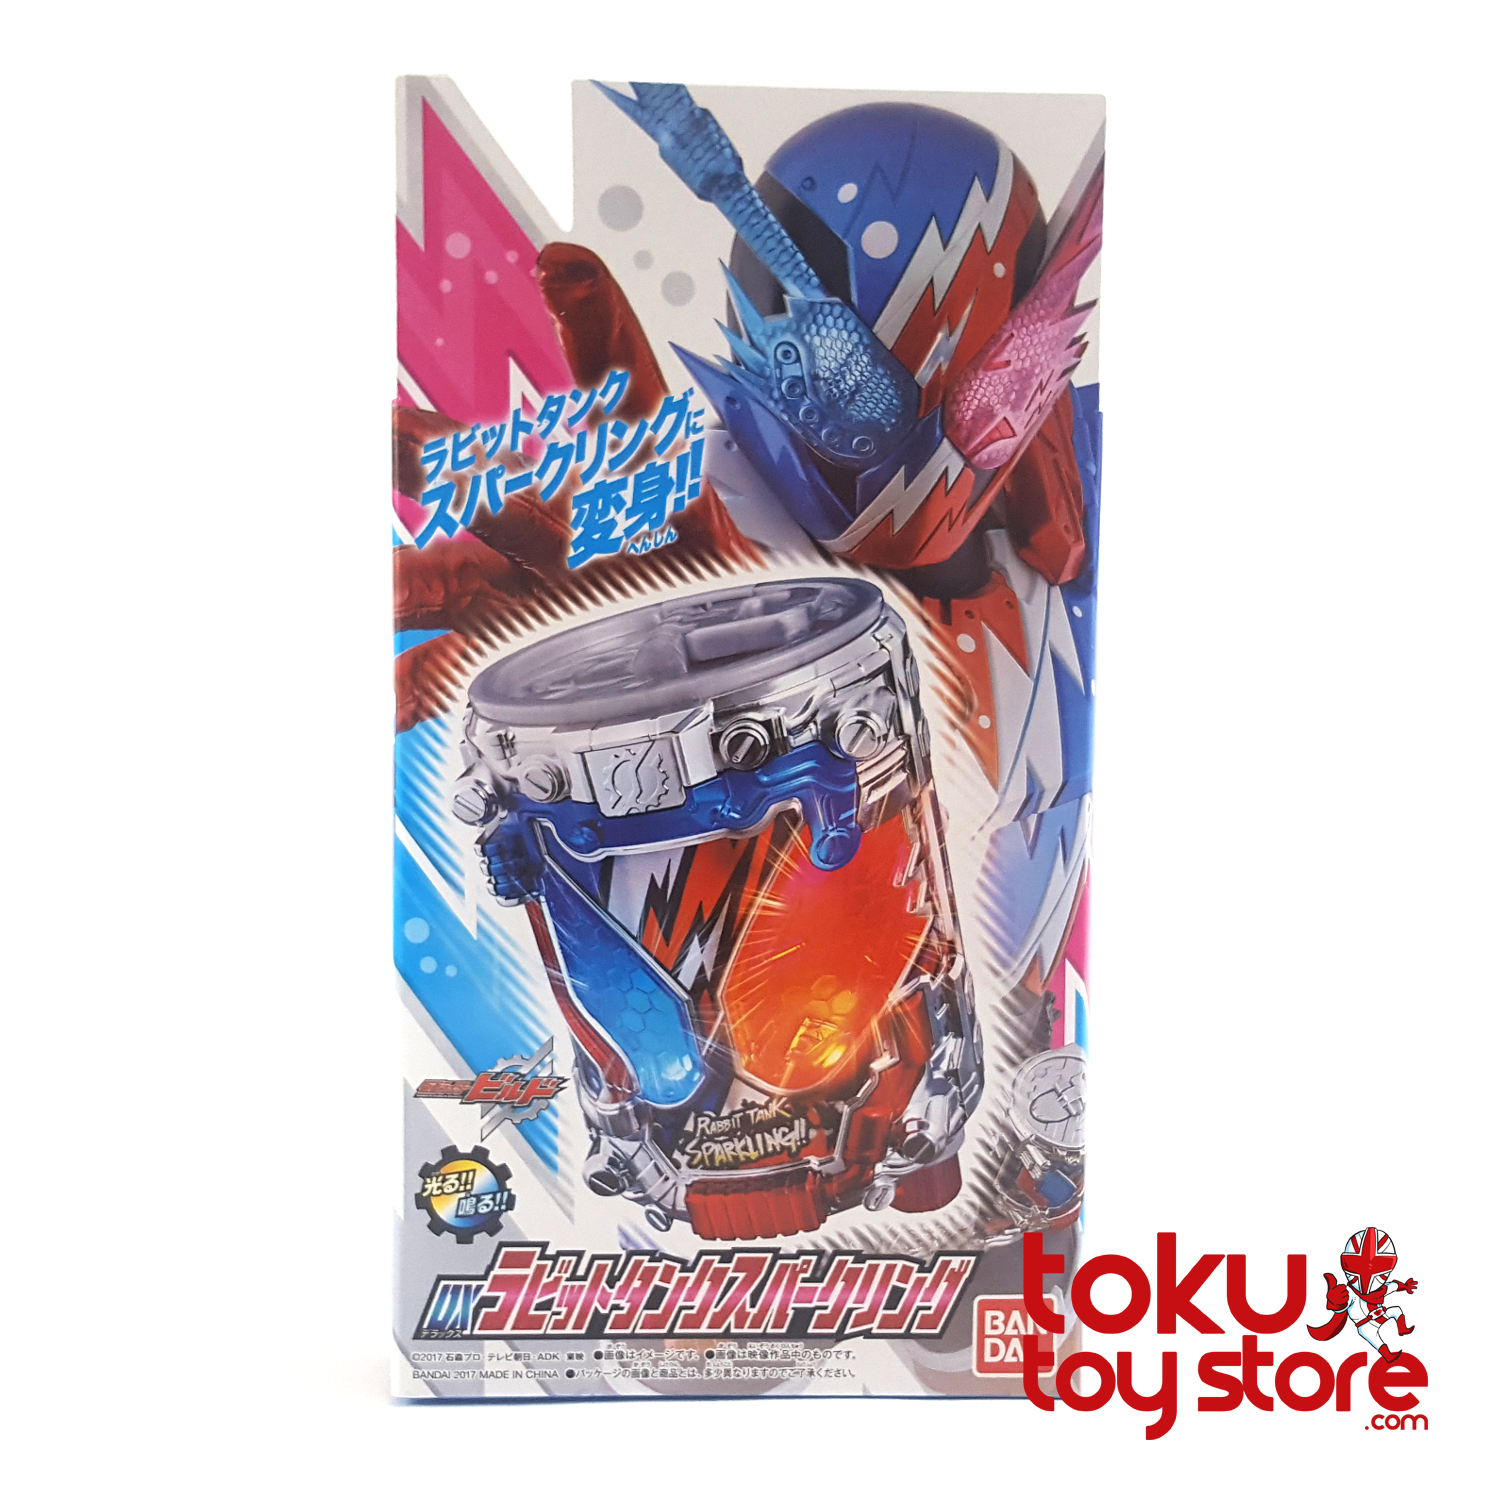 DX RabbitTank Sparkling (box)